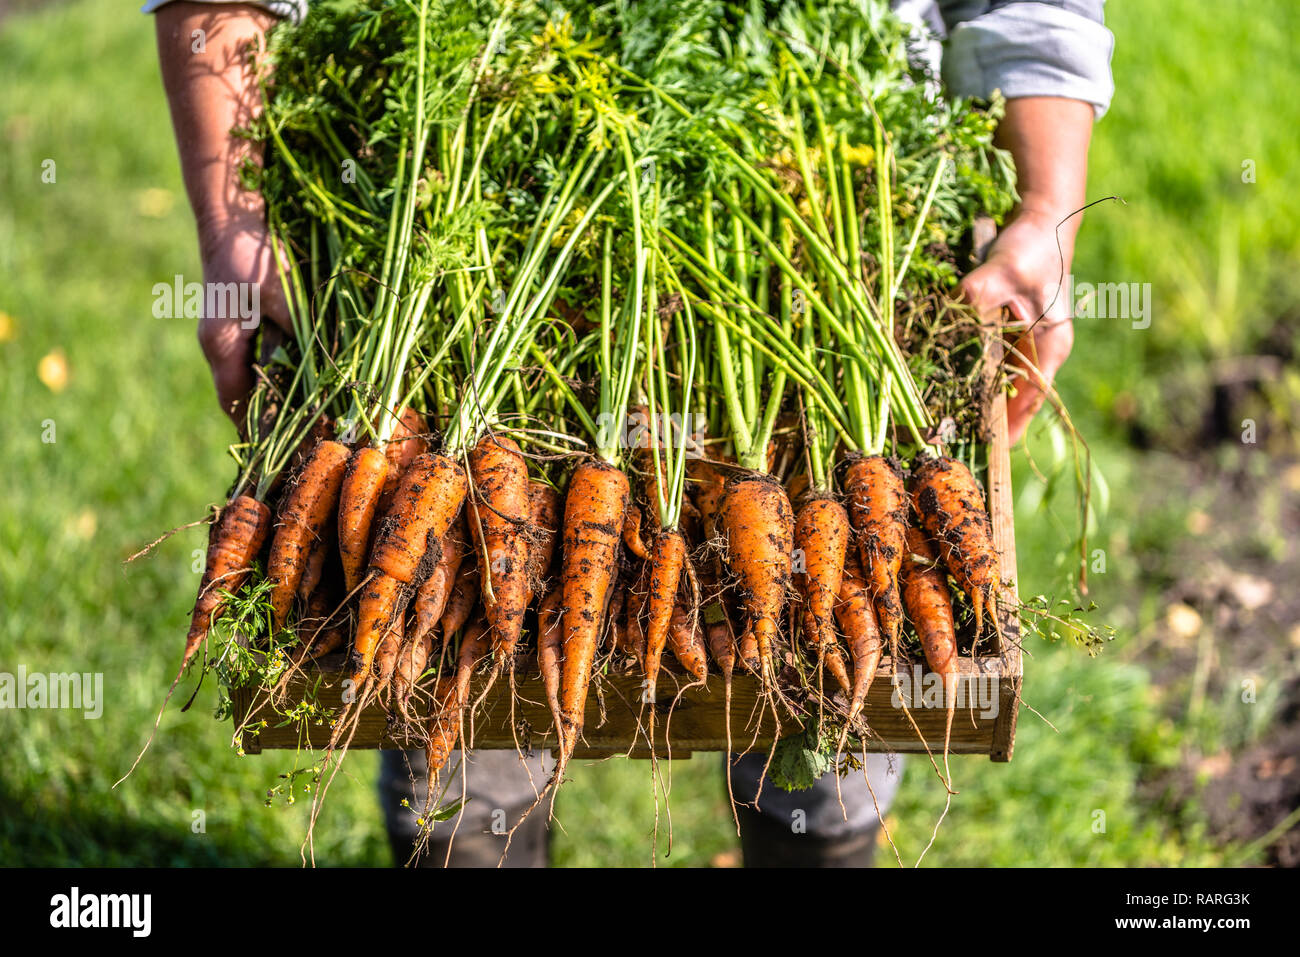 Local farmer holding a box of freshly harvested carrots from the organic vegetable garden, bio farming concept Stock Photo